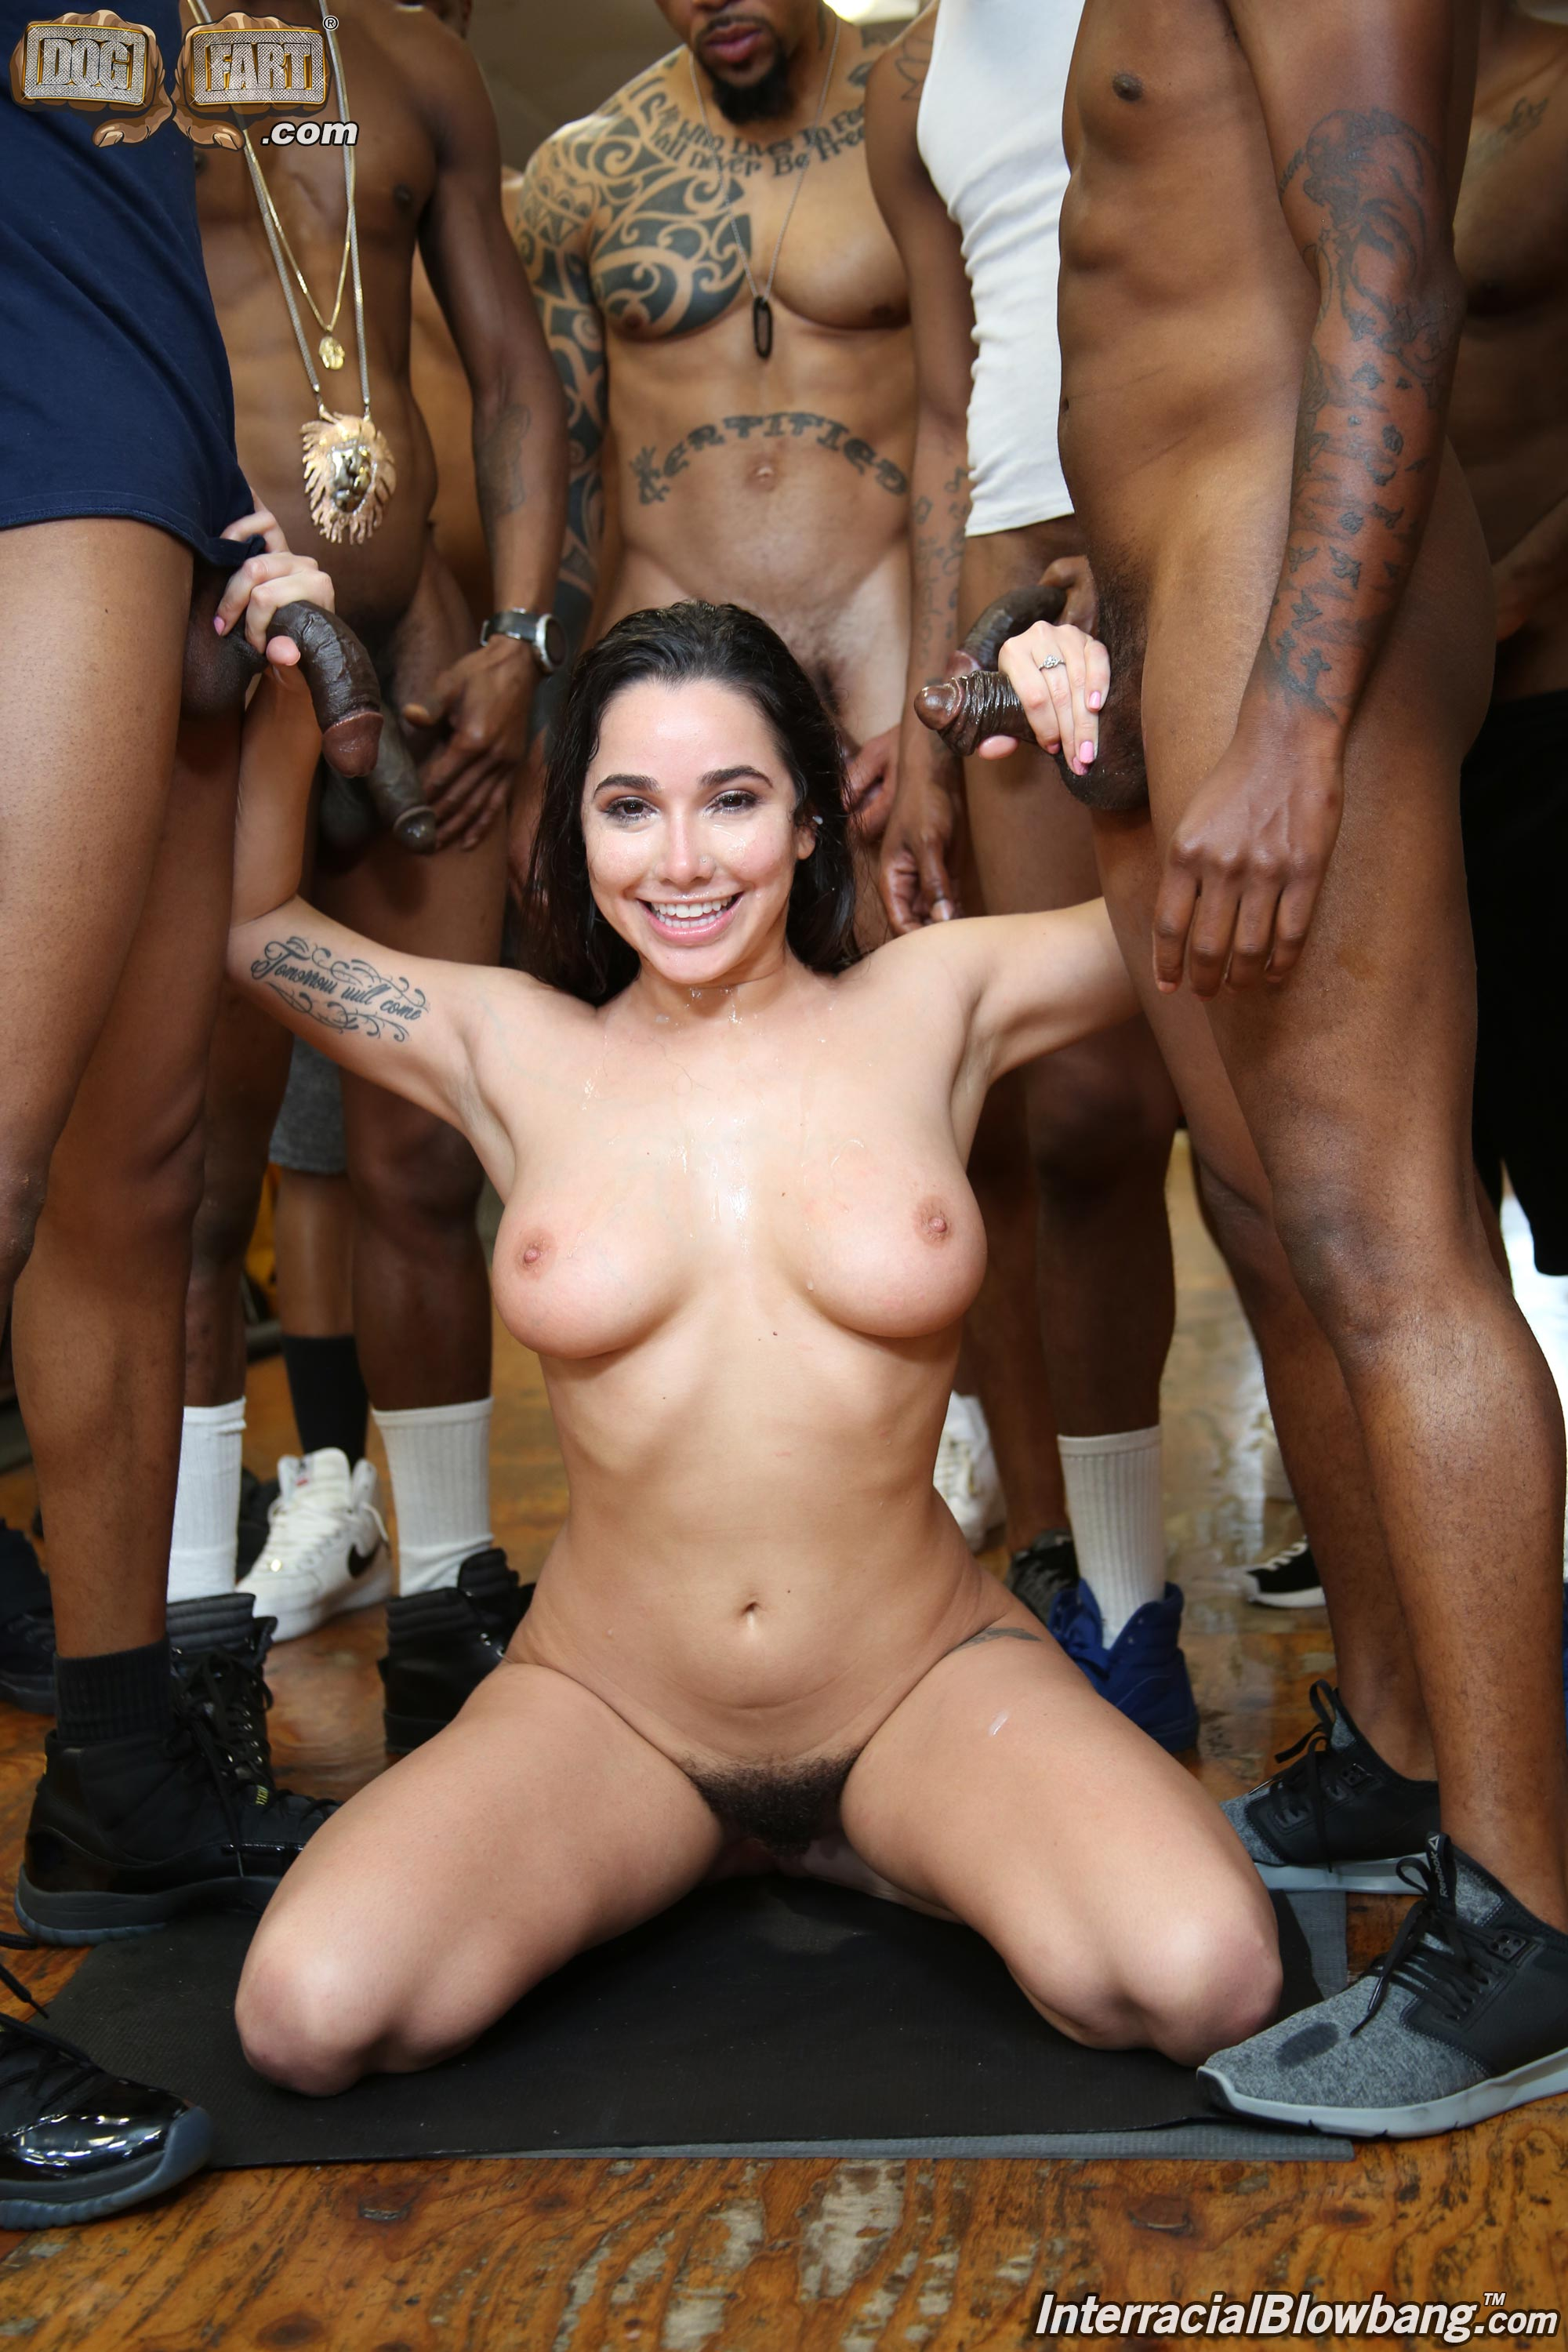 remarkable, very year old pornstar cum filled remarkable, rather amusing